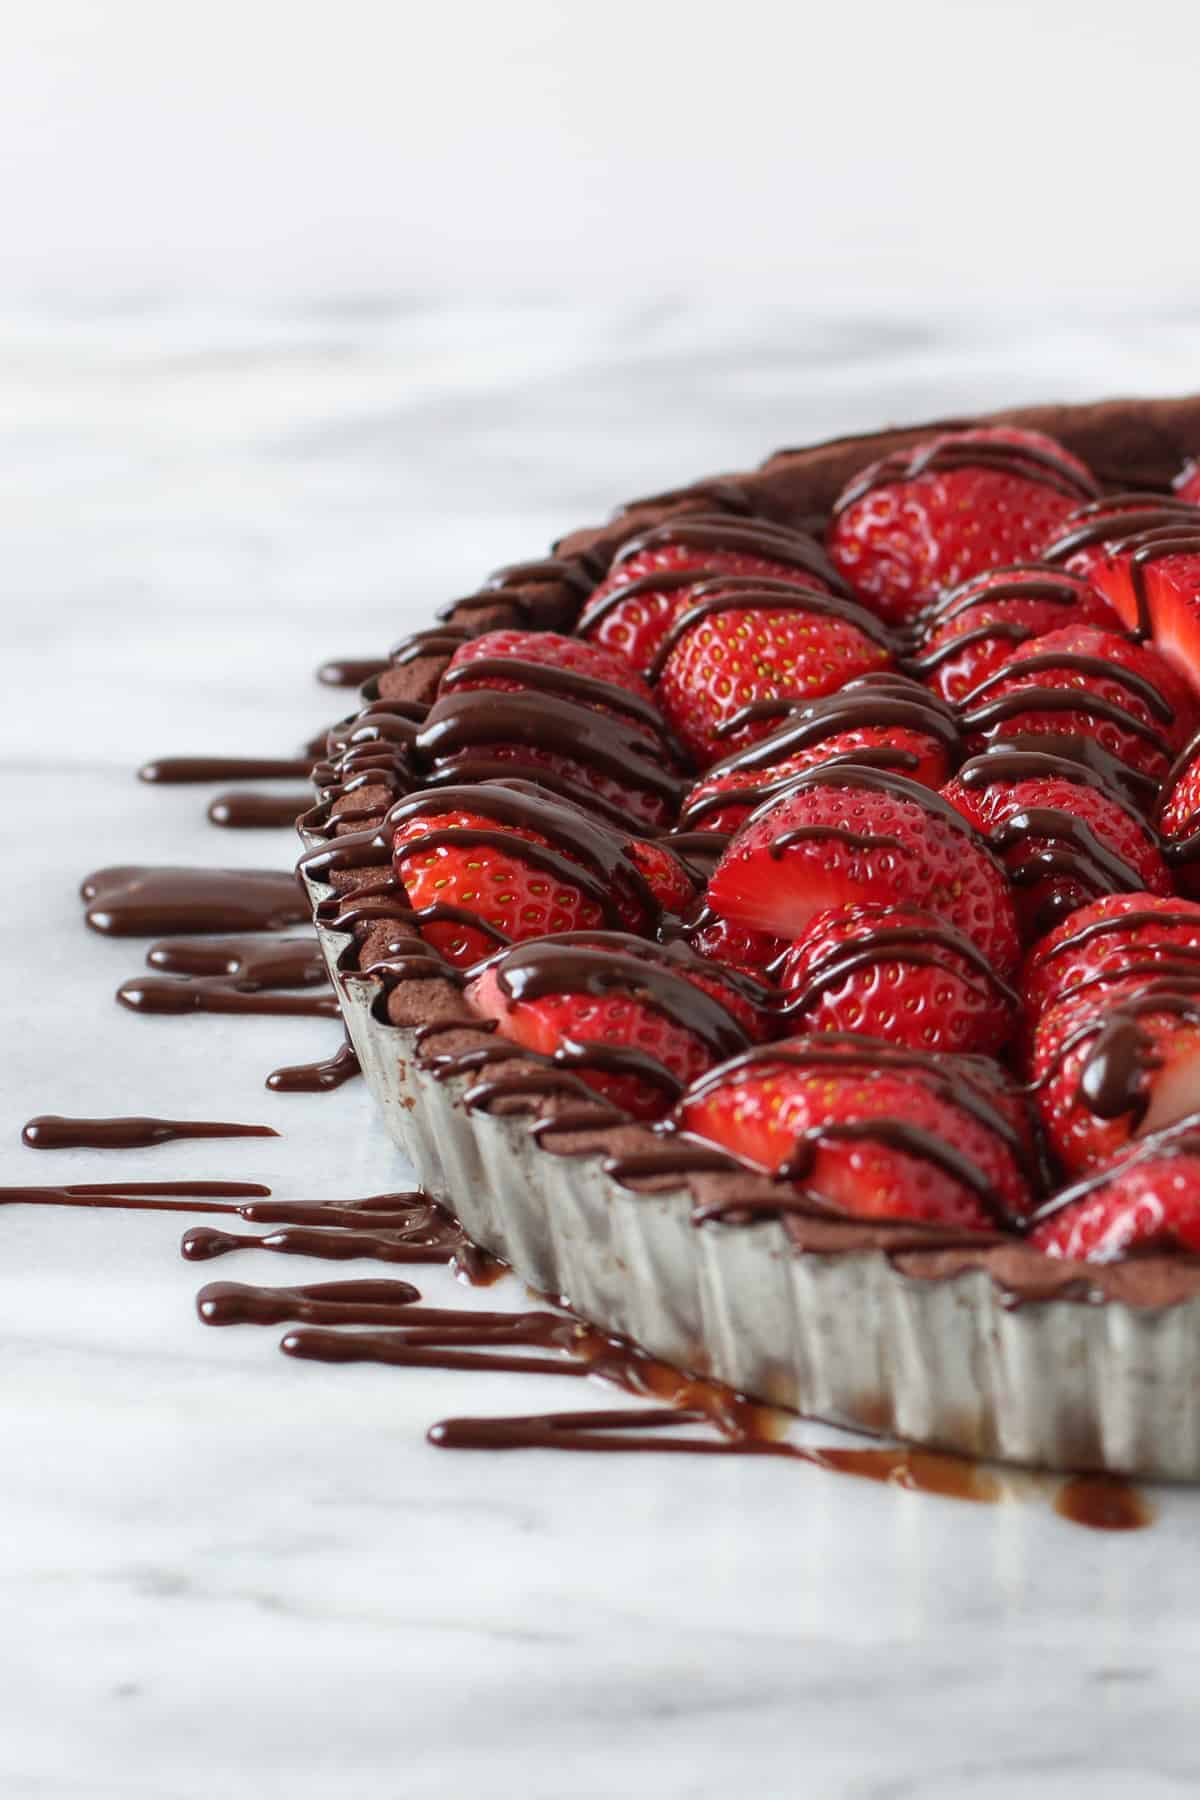 Strawberry pie with chocolate ganache drizzled over the top